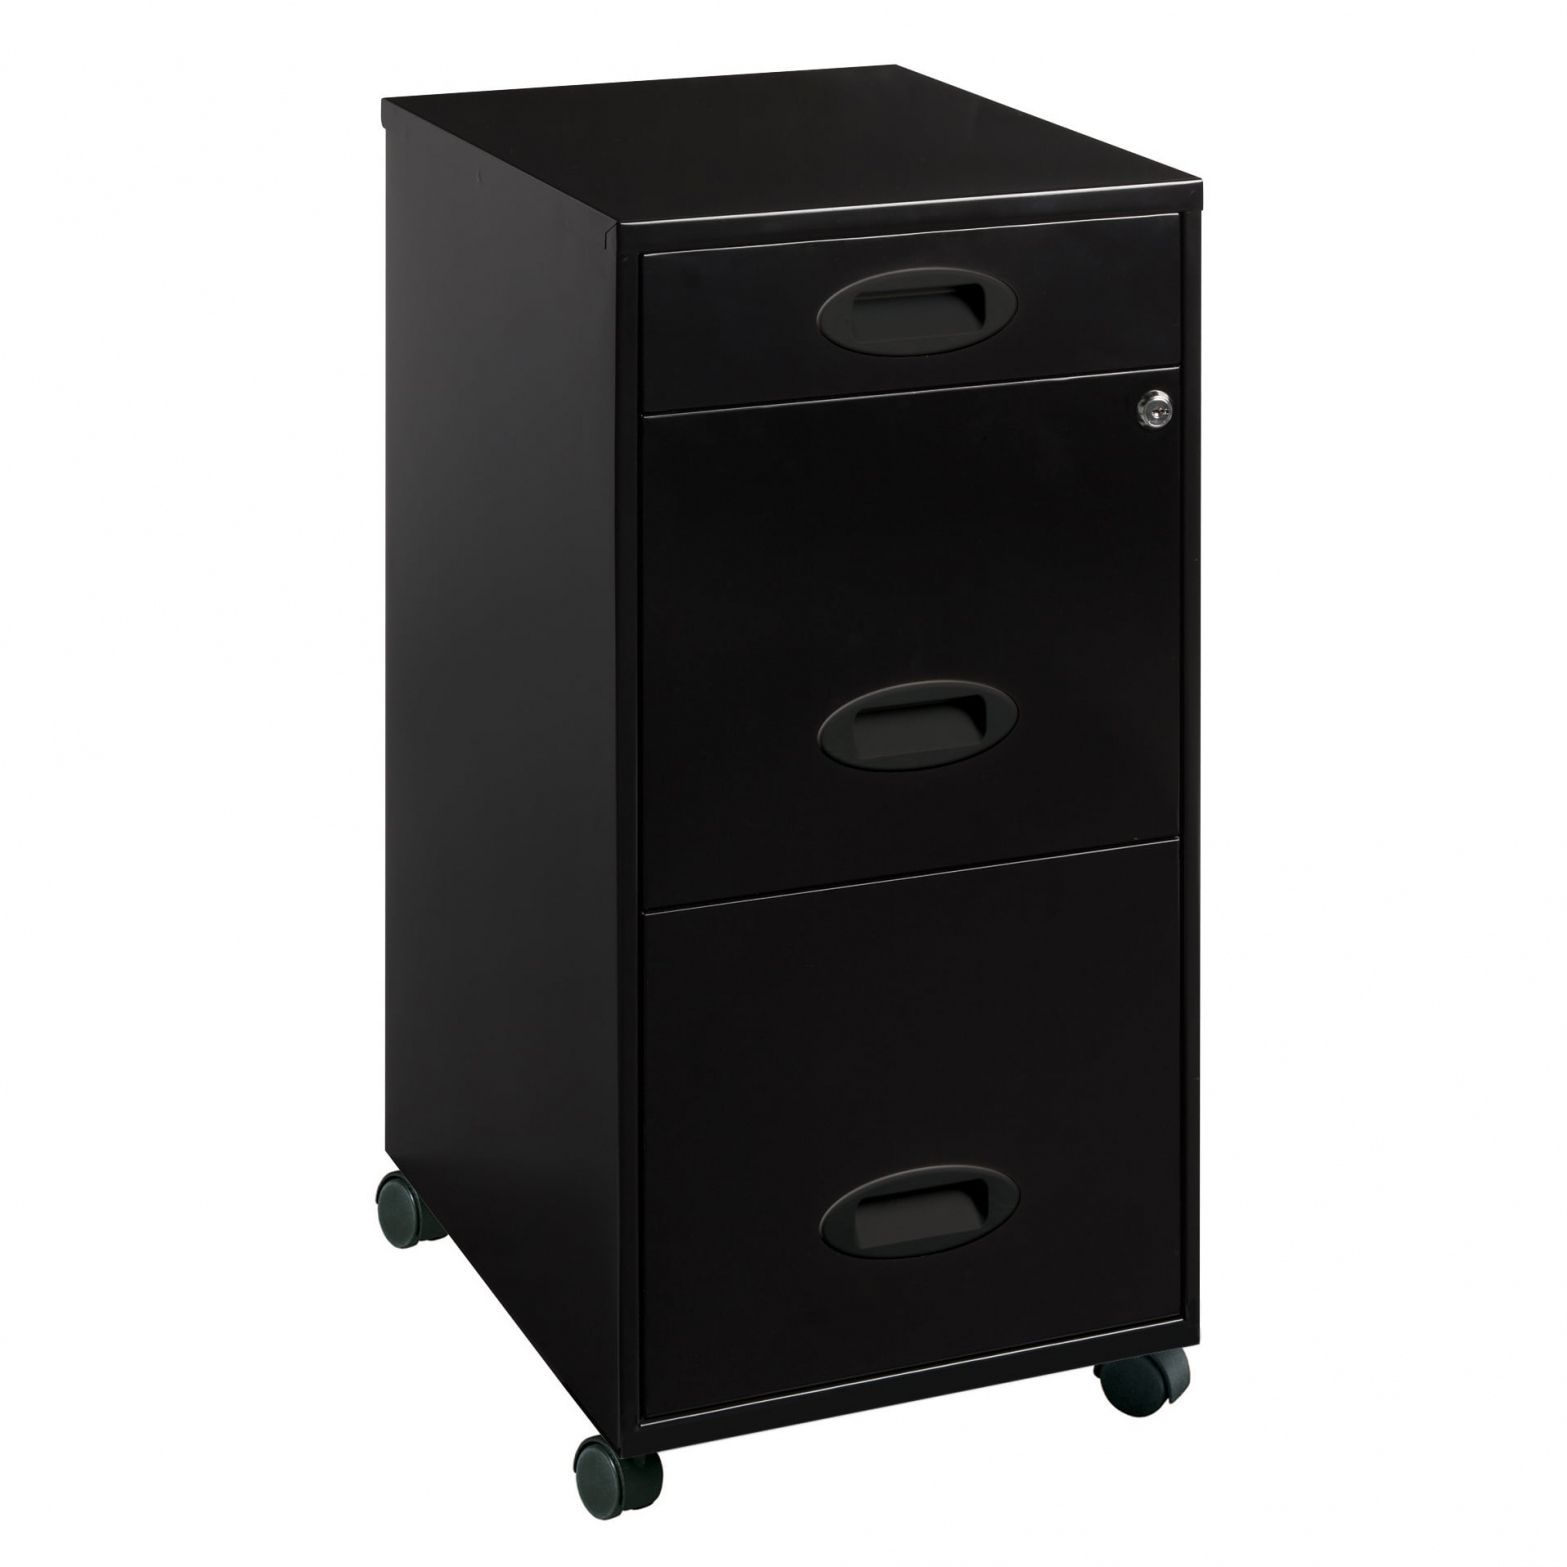 50 Office Designs Black 2 Drawer Mobile File Cabinet Used Home Furniture Check